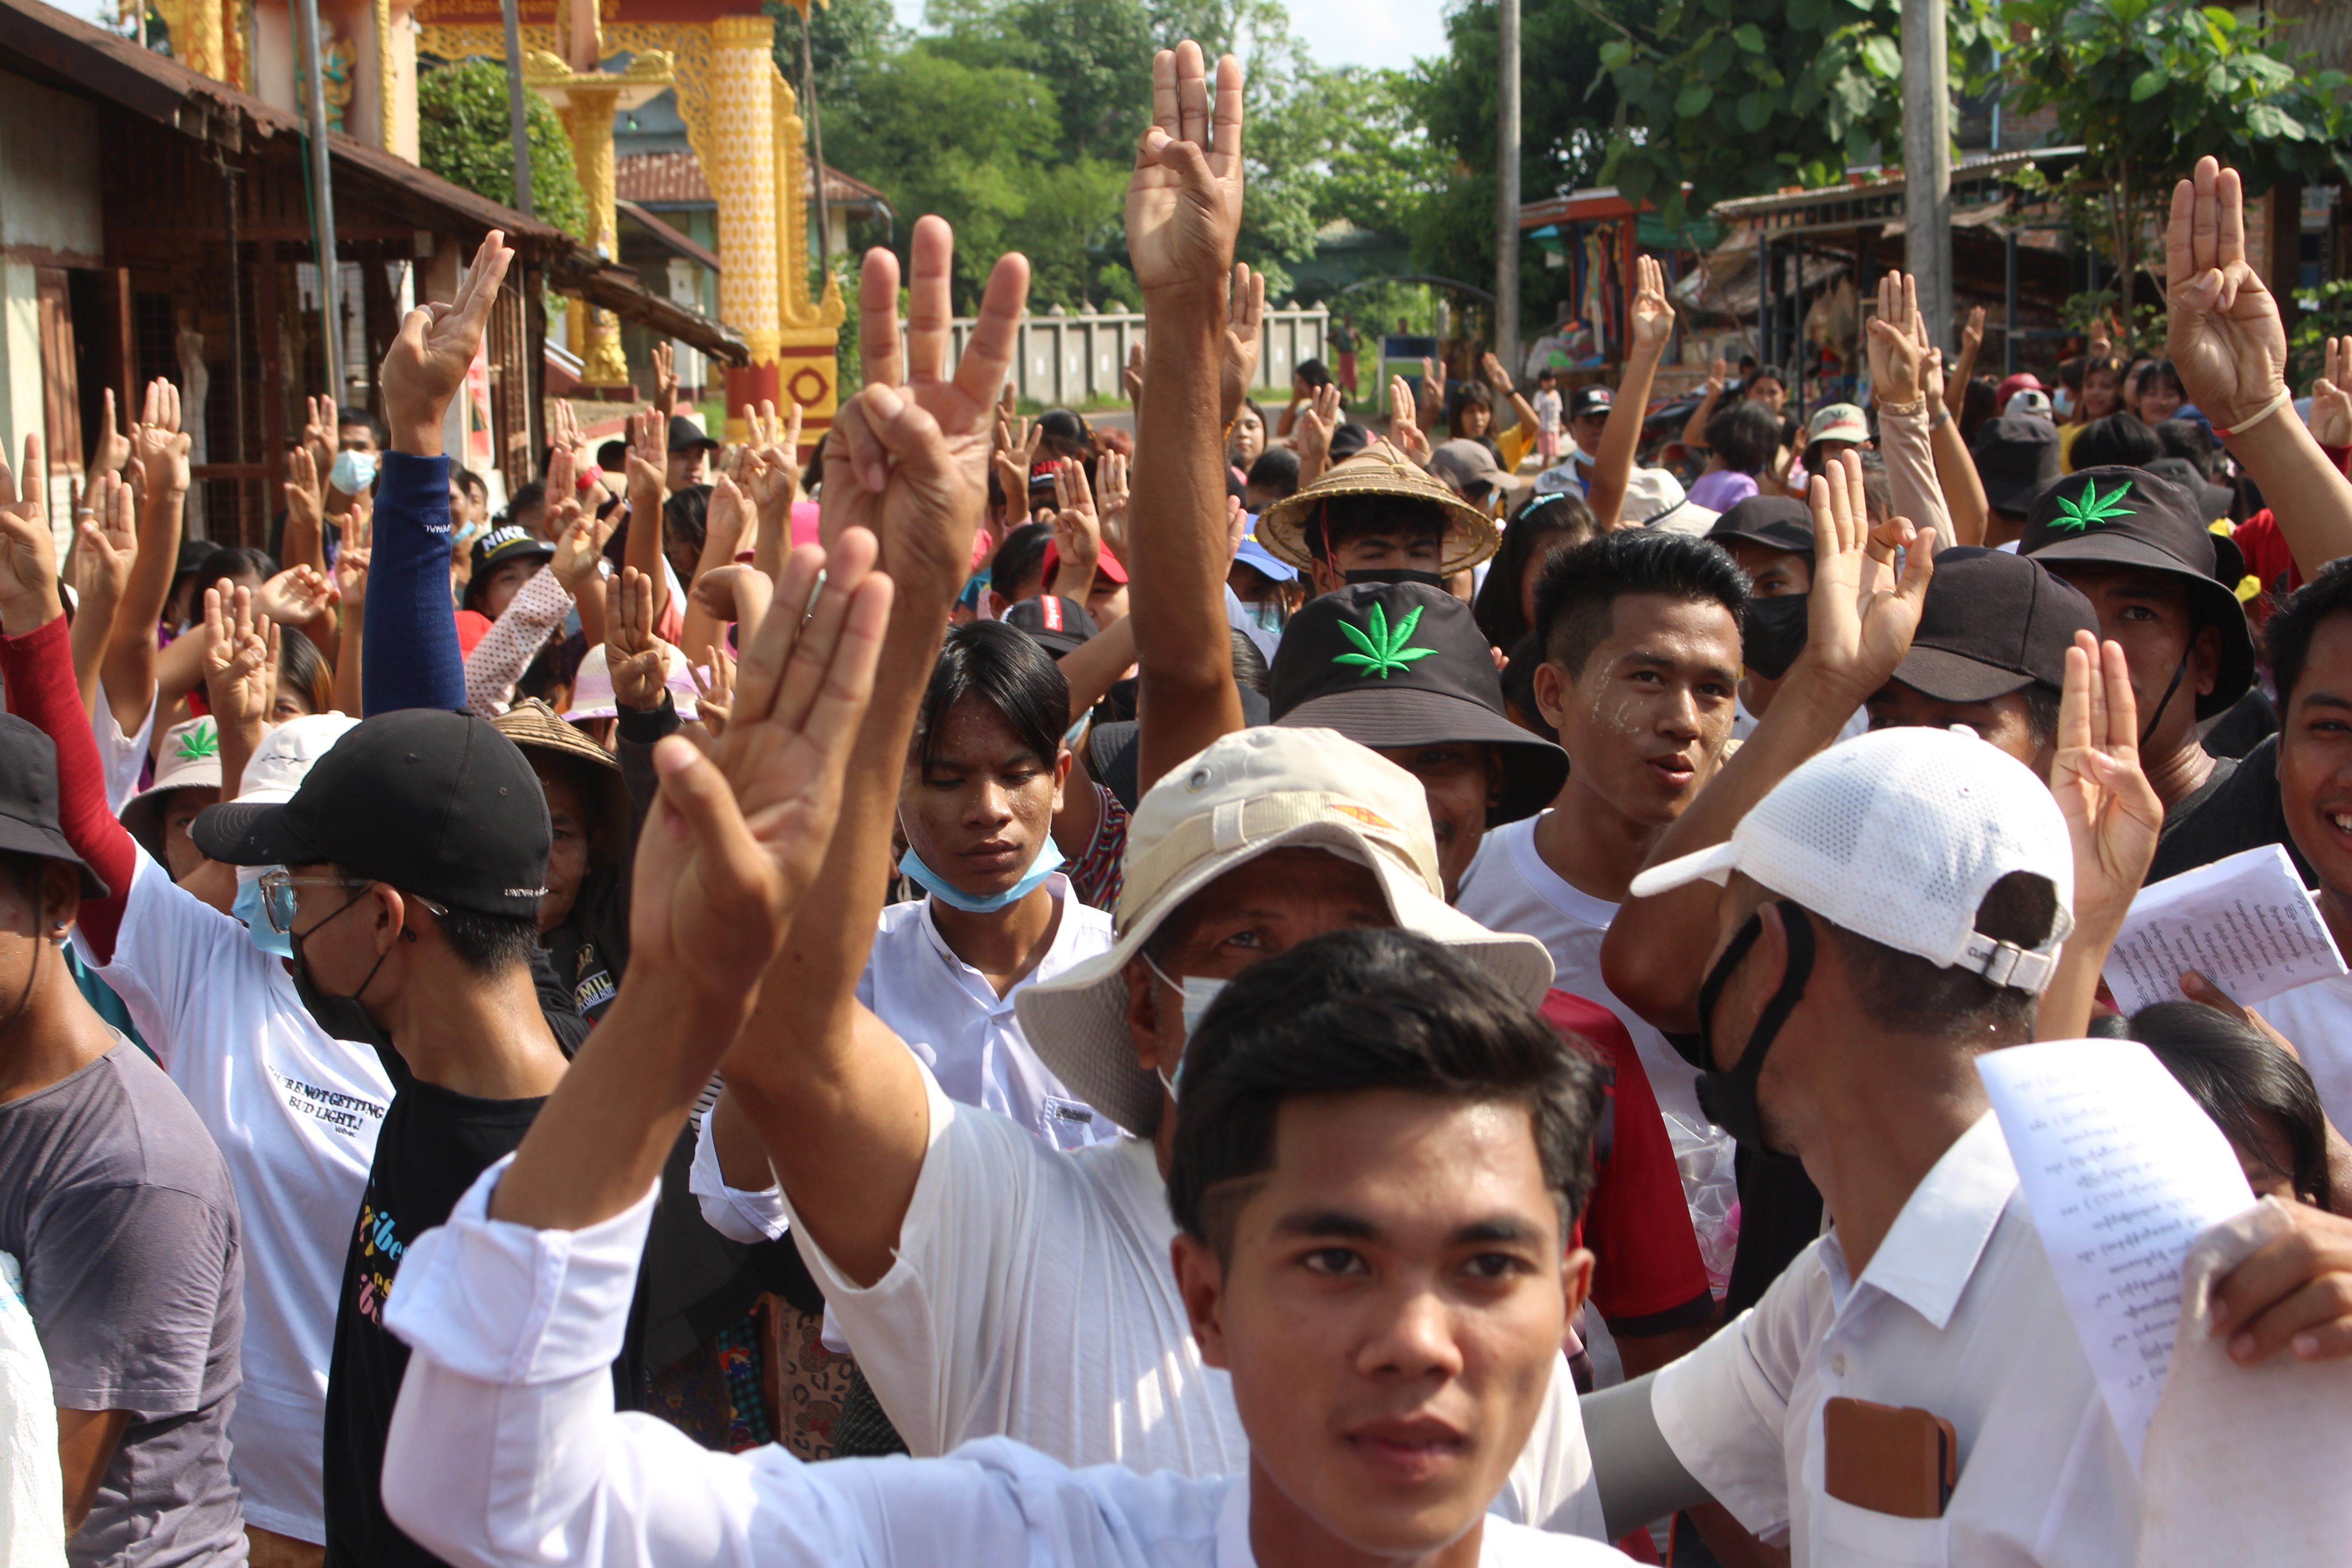 People attend a protest against Myanmar's military coup in Launglon, Myanmar April 23, 2021 in this picture obtained by Reuters. DAWEI WATCH via REUTERS